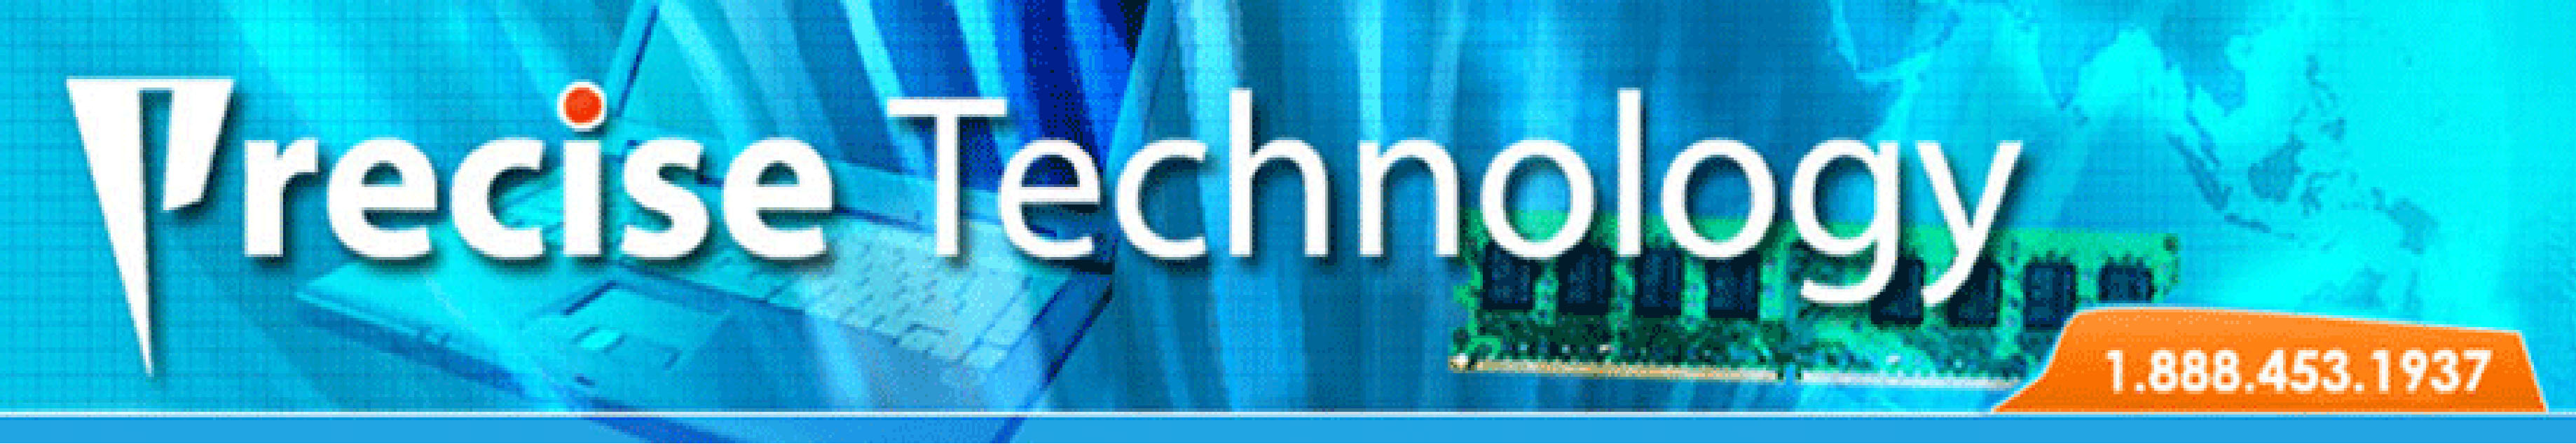 Made-in-California-manufacturer-Precise-Technology-Logo-cropped.jpg